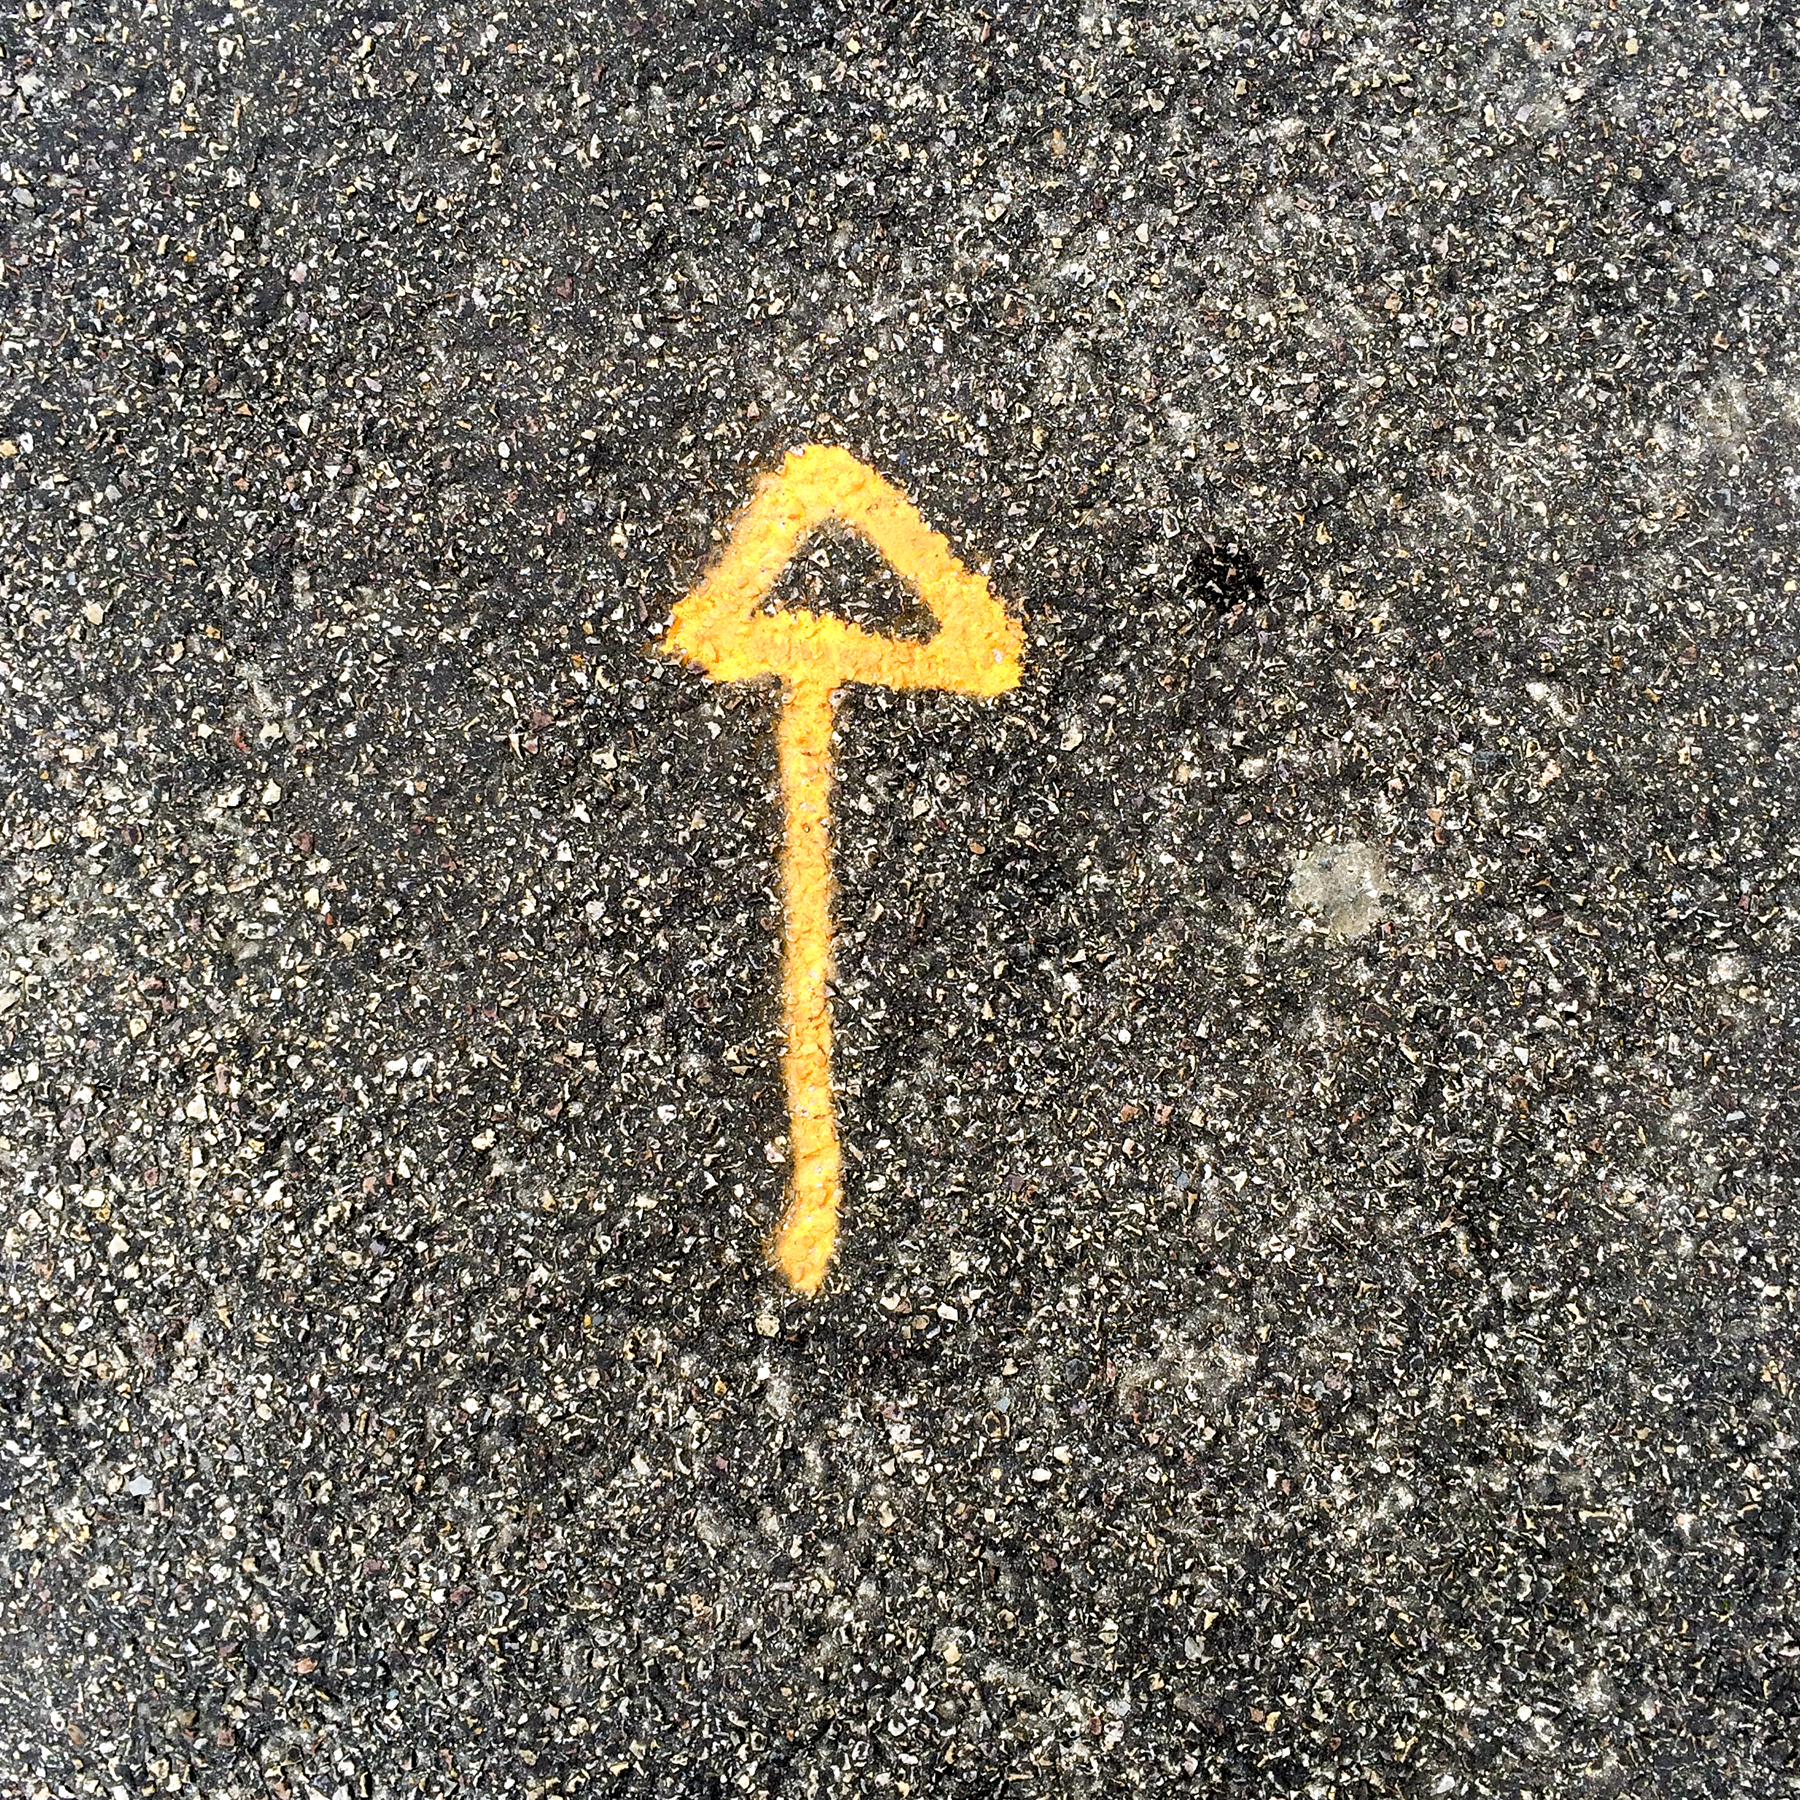 4th of 6 placeholder images: yellow arrow spraypainted on pavement